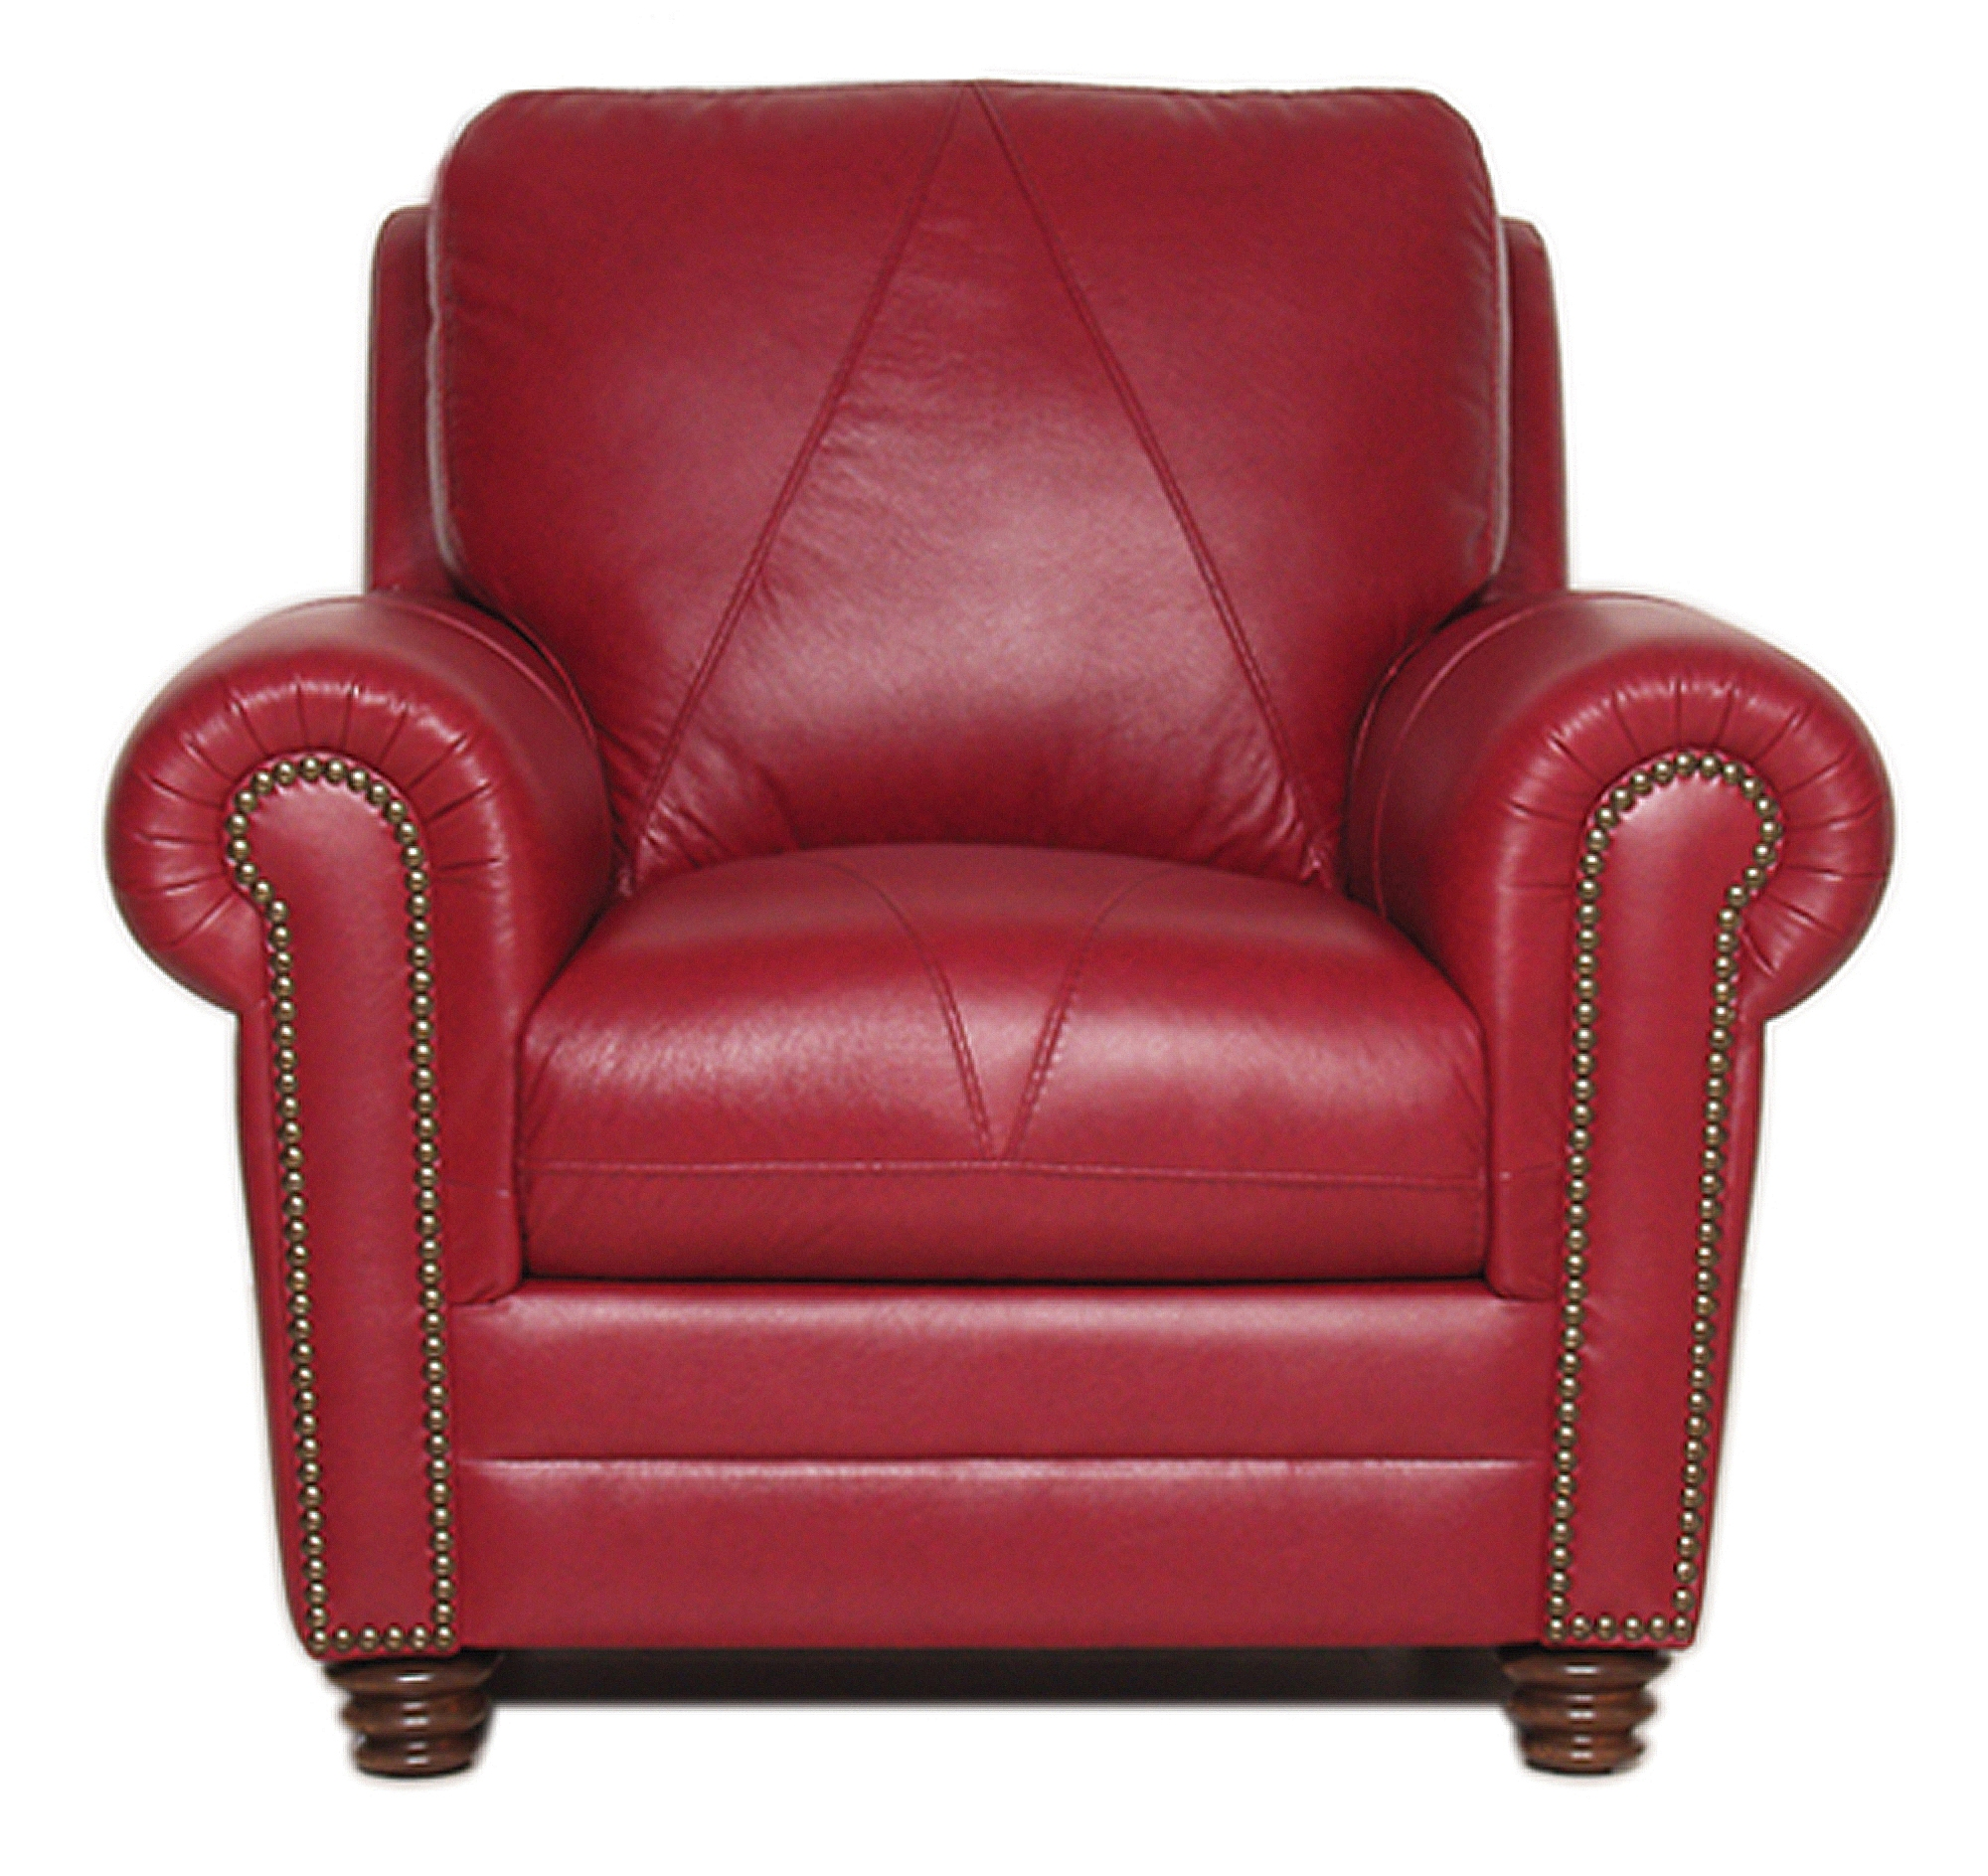 Luke Leather Furniture Weston Collection Within Red Sofas And Chairs (Image 6 of 15)